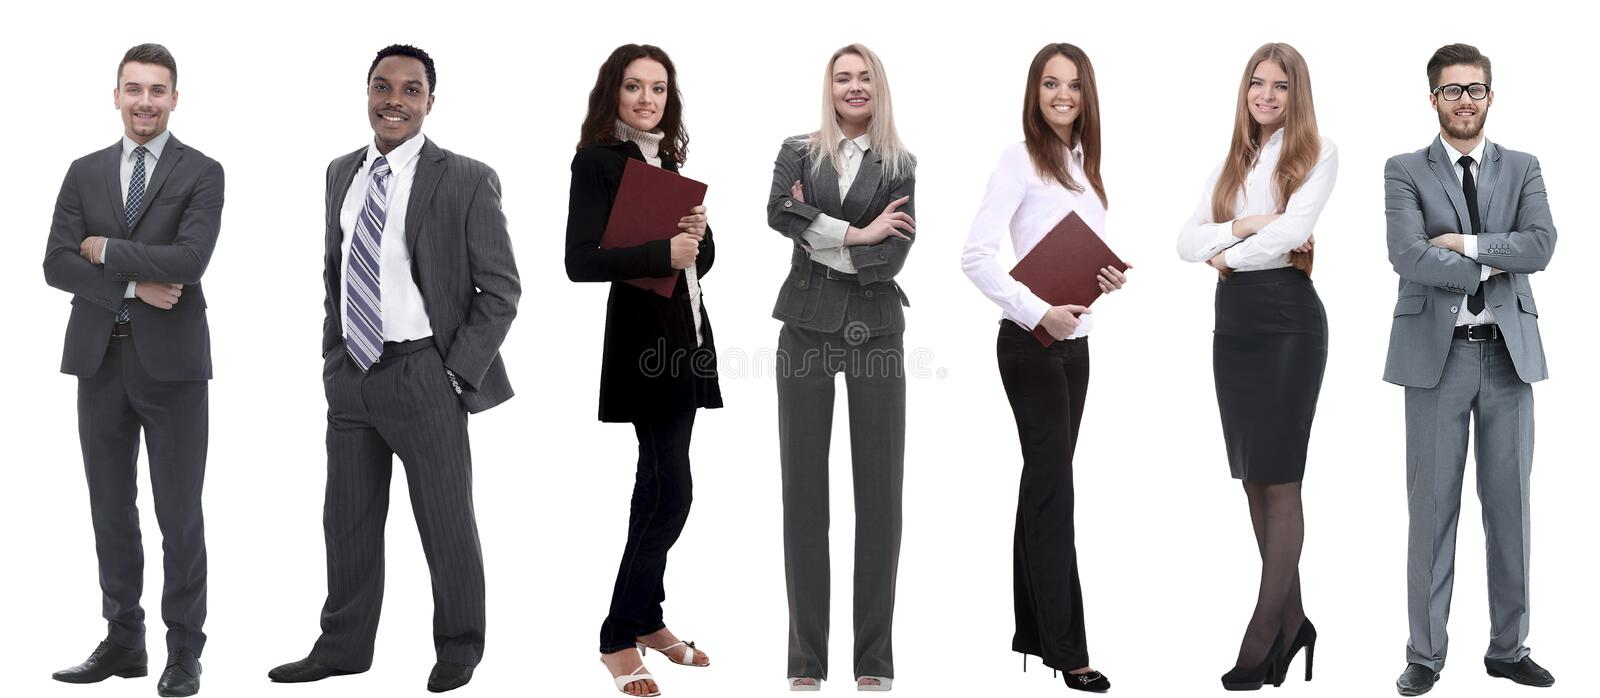 Group of successful business people standing in a row. stock photography